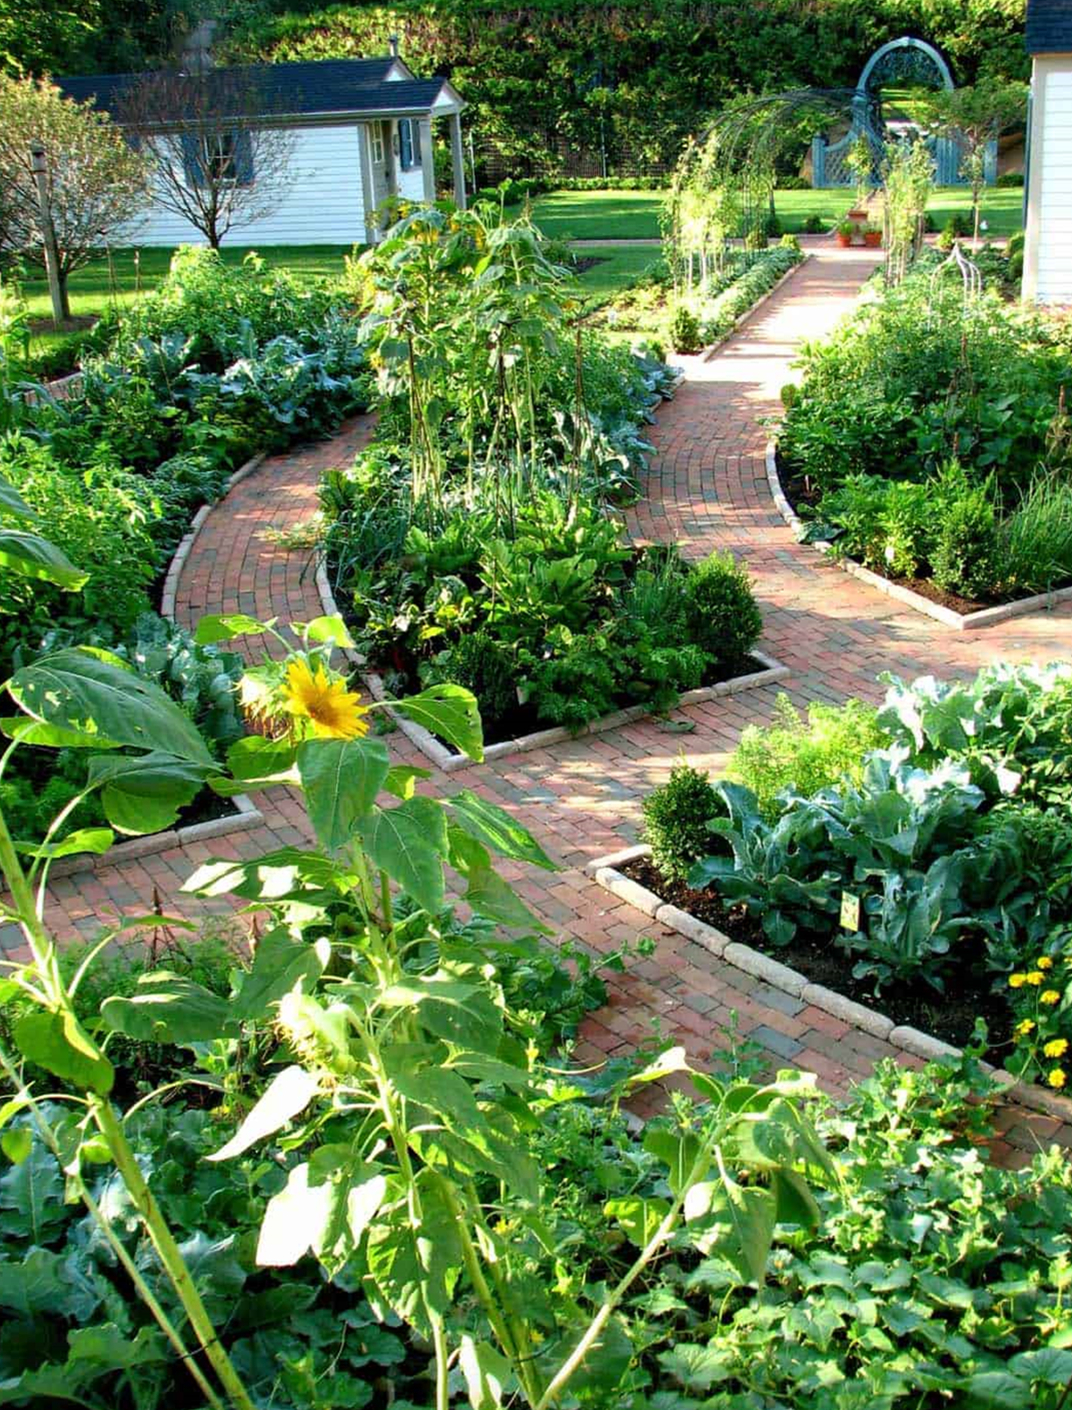 Garden Decoration- Benefits of Growing Your Own Vegetables.